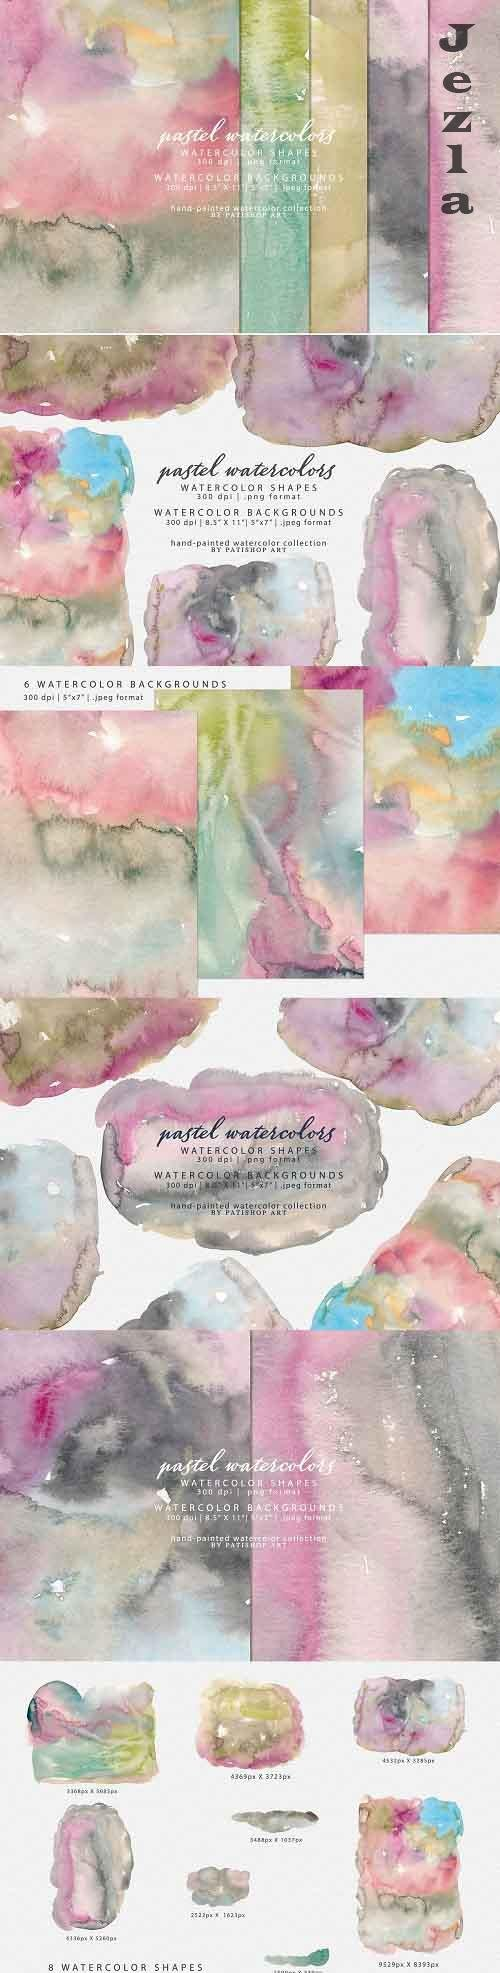 Watercolor Shapes & Backgrounds - 5323308